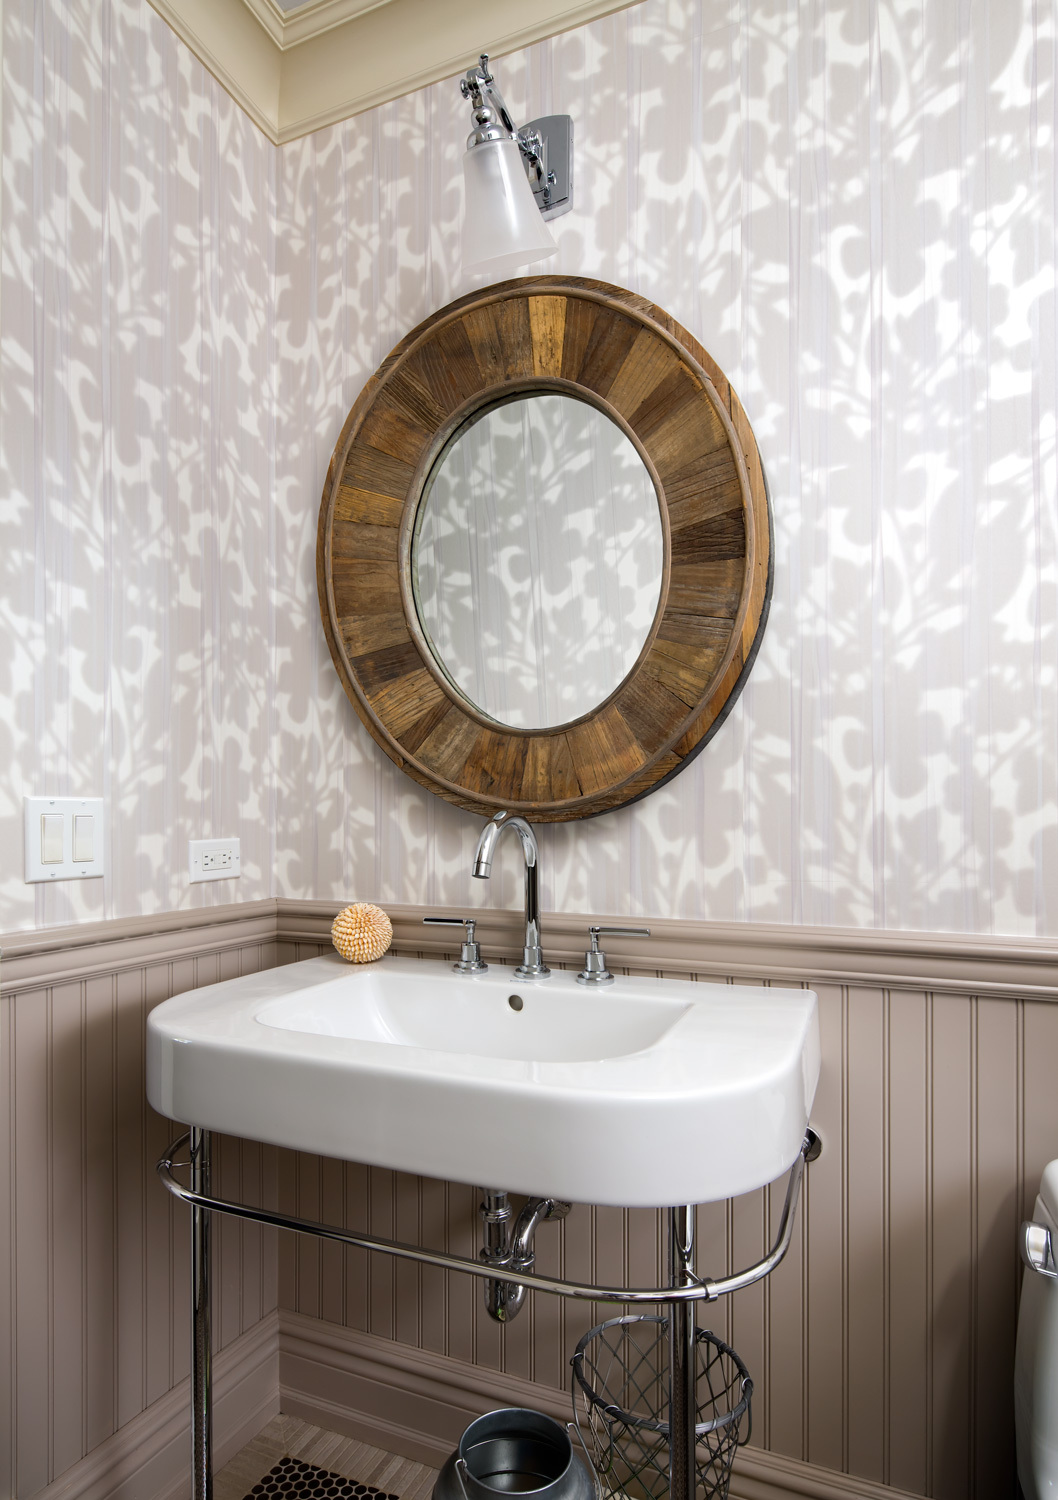 bathroom with subtly textured grey and white wallpaper and circular mirror with wood detailing